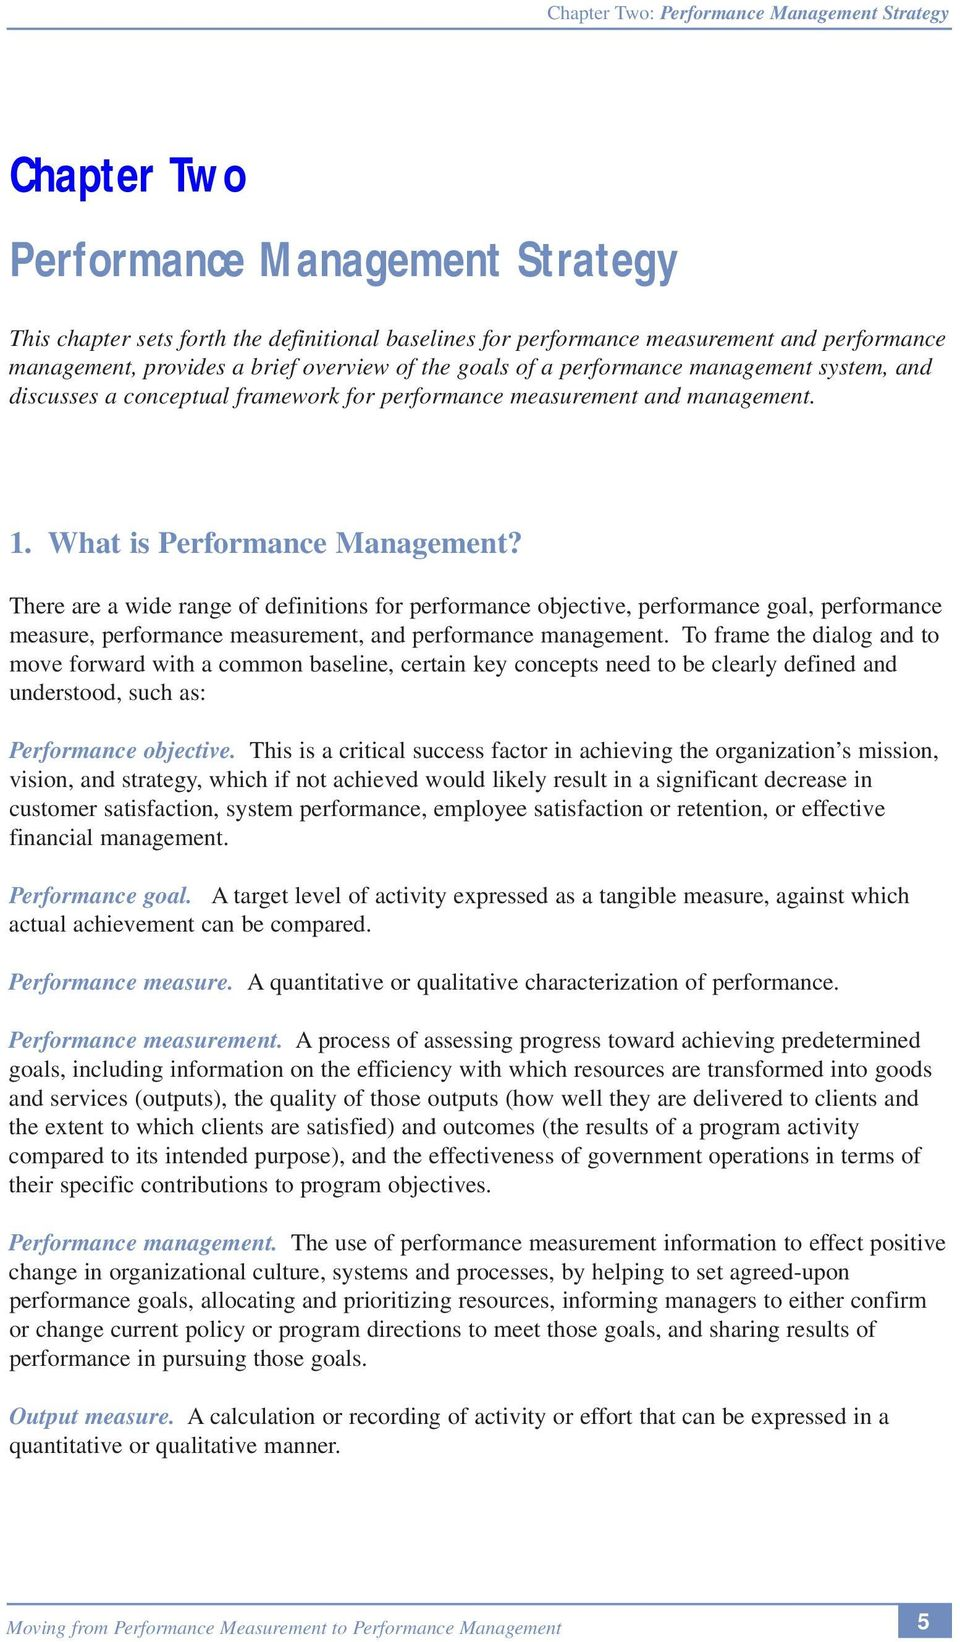 There are a wide range of definitions for performance objective, performance goal, performance measure, performance measurement, and performance management.